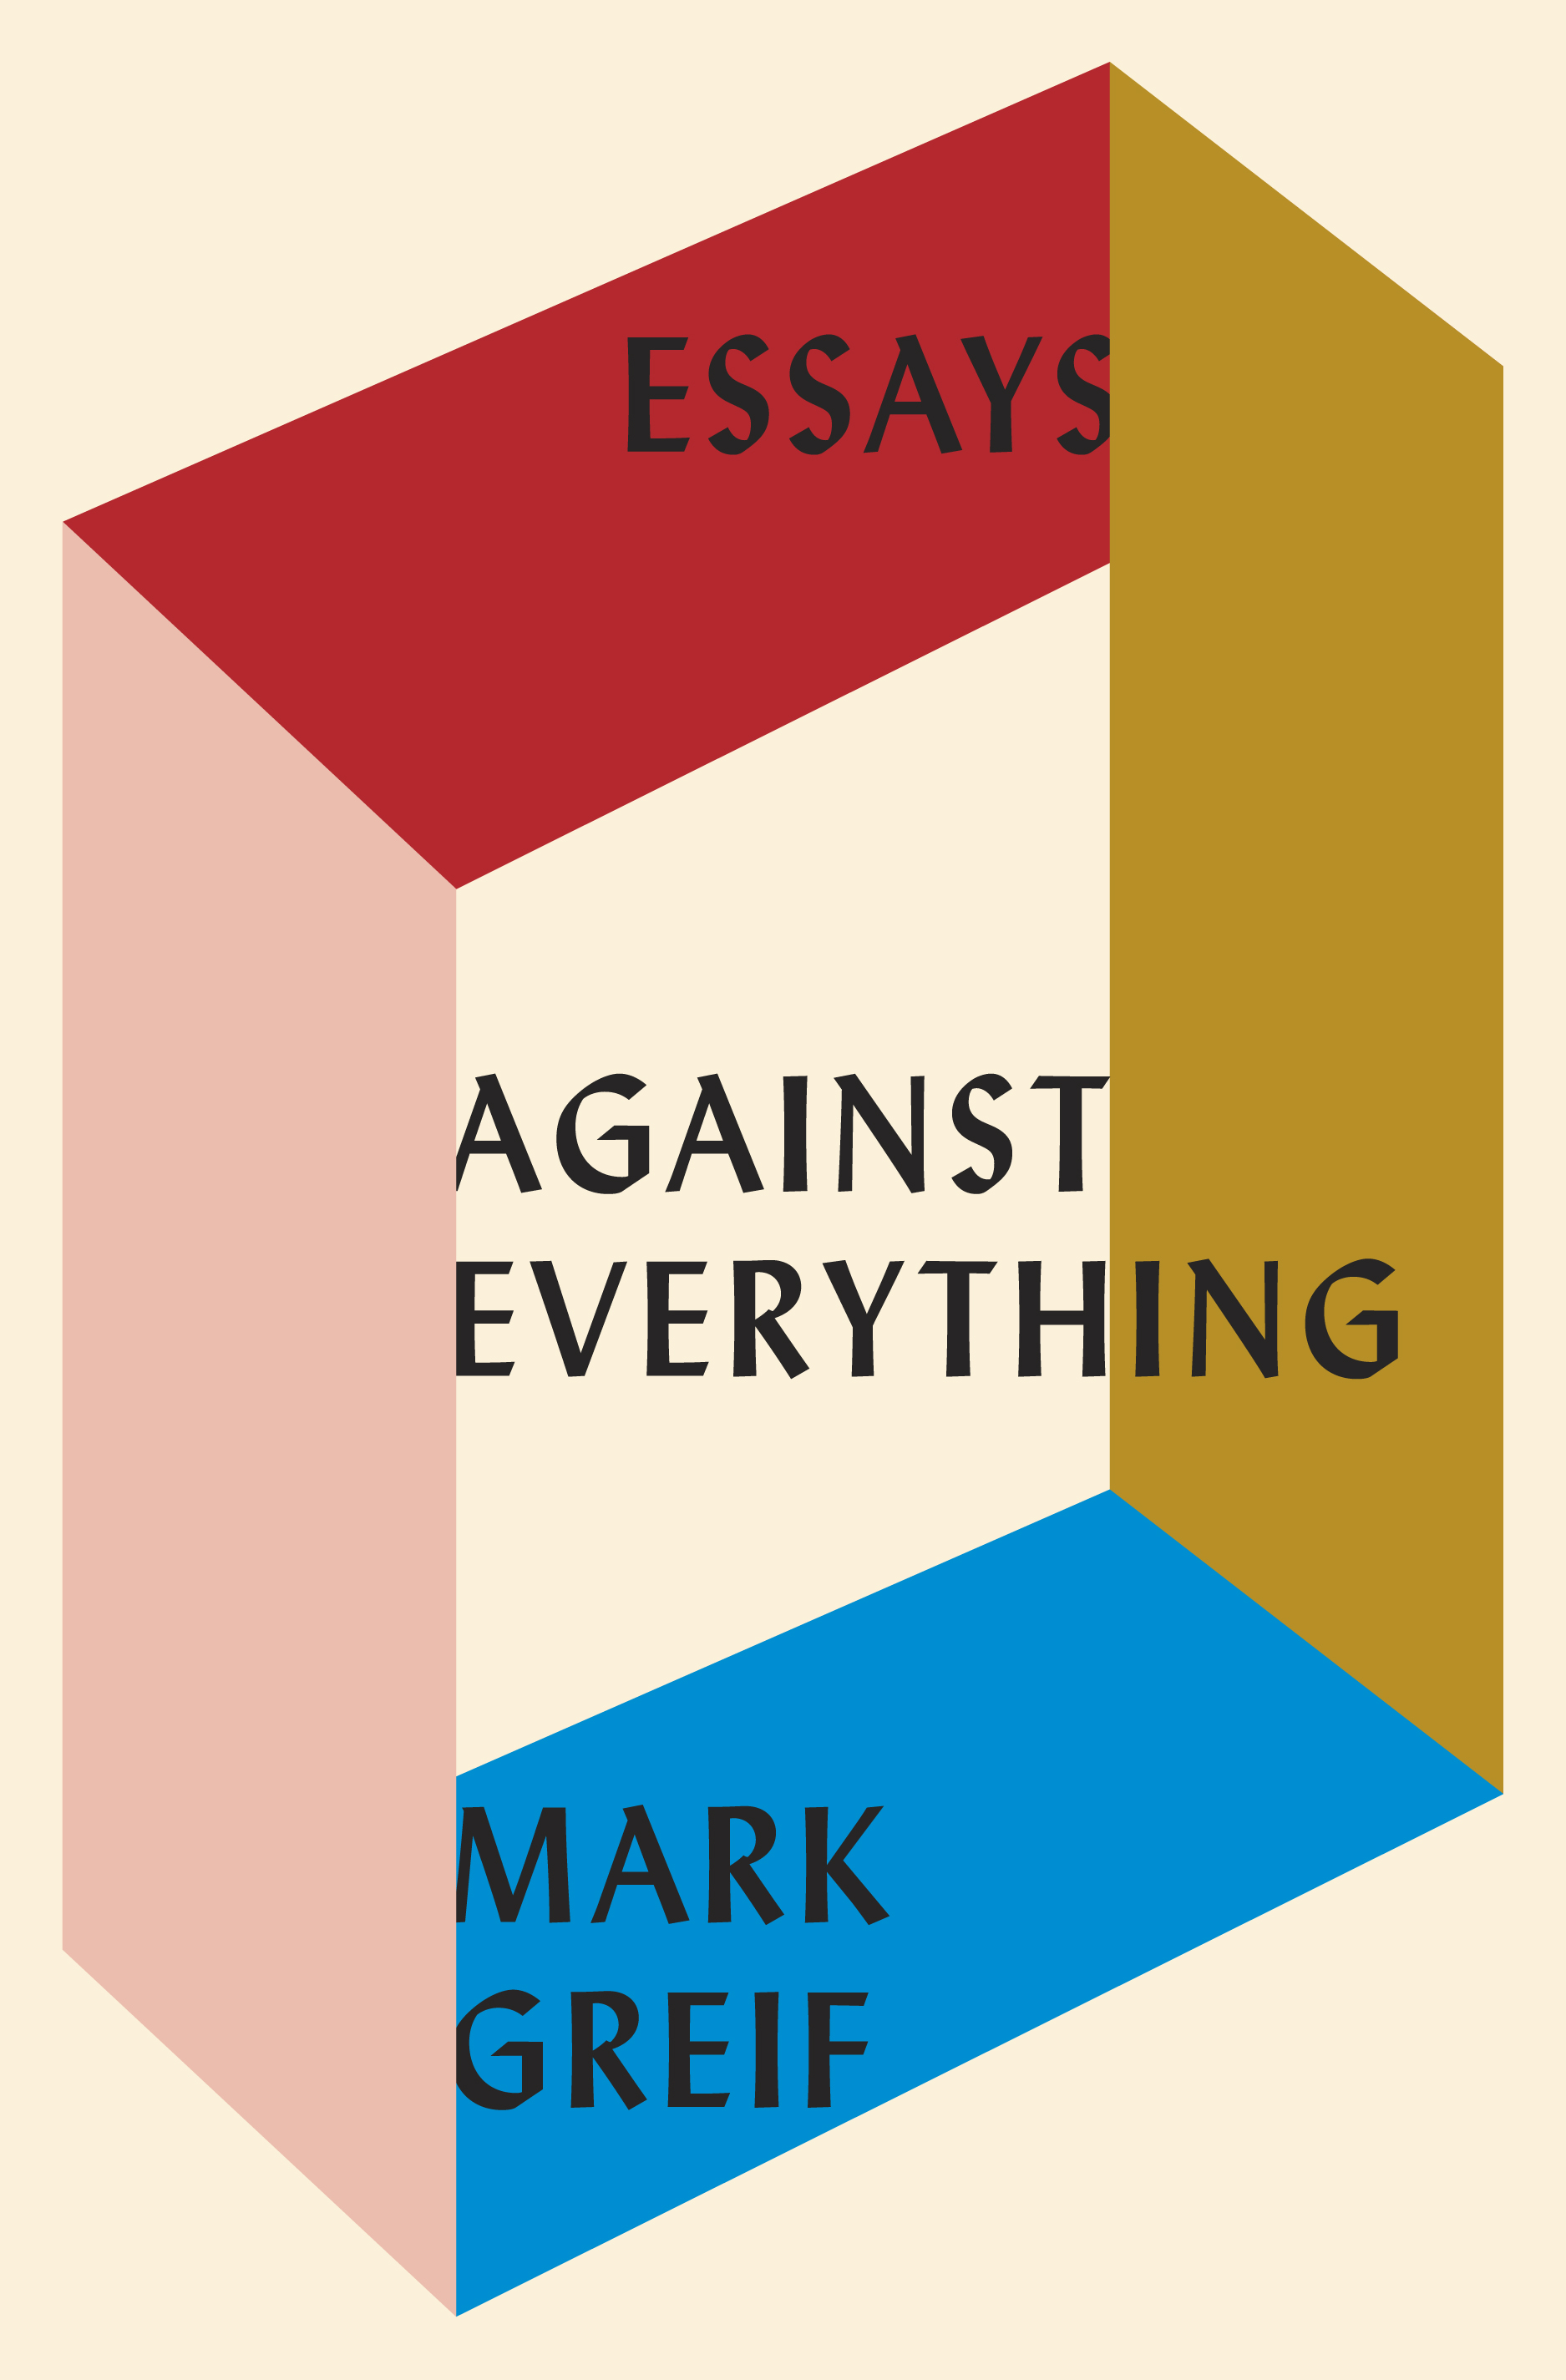 Learn the about the book cover design of Essays Against Everything